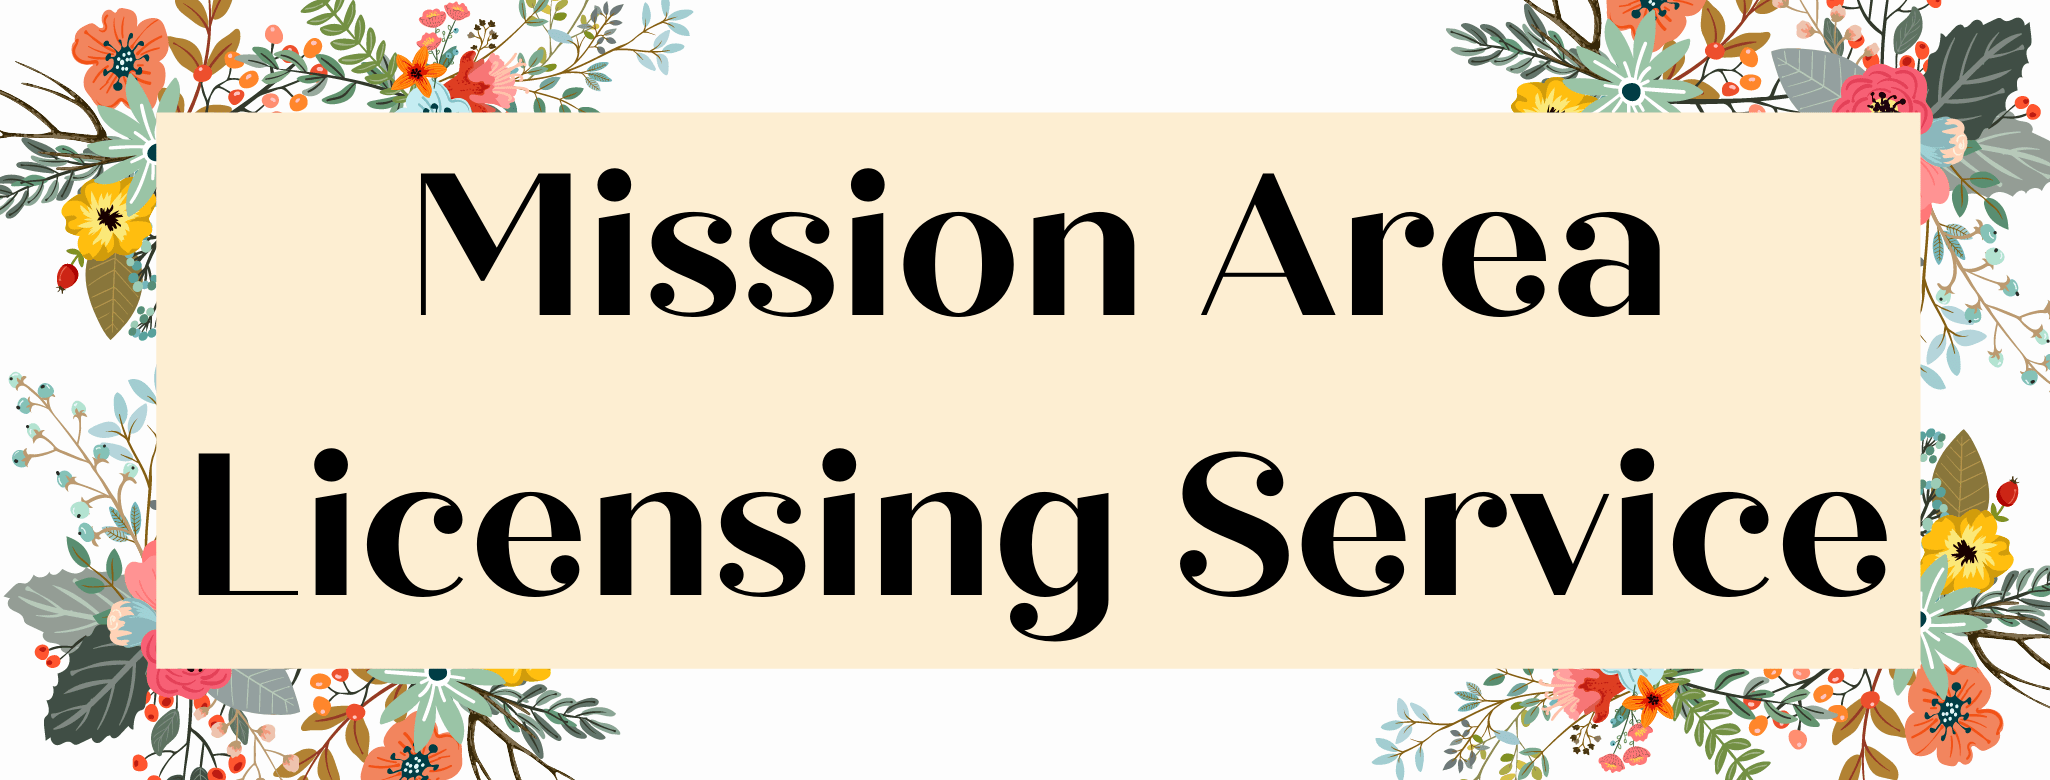 Mission Area Licensing Service